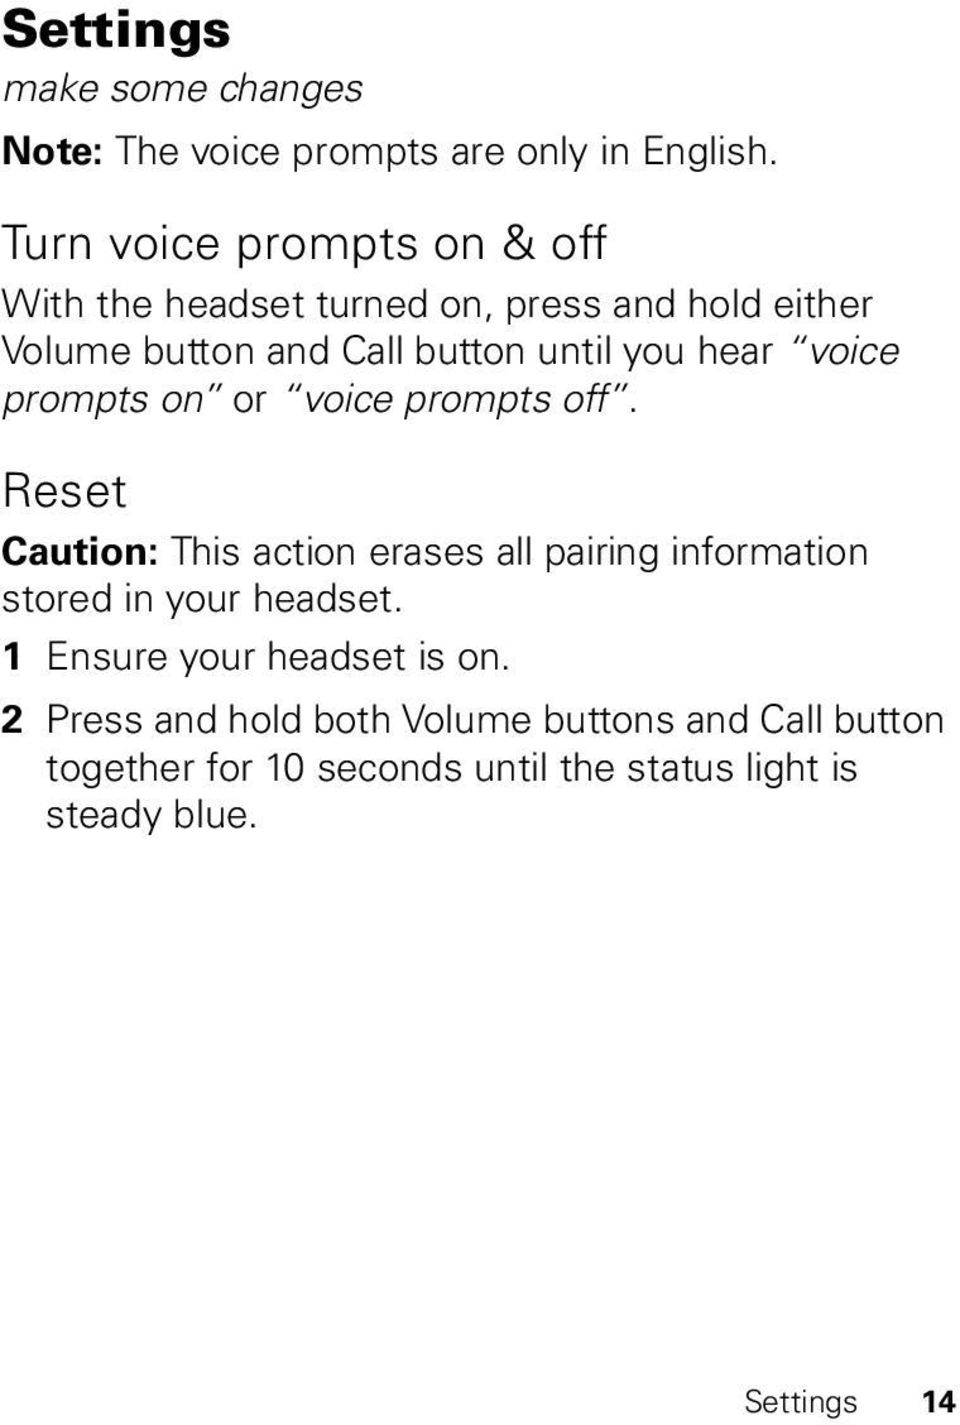 hear voice prompts on or voice prompts off.